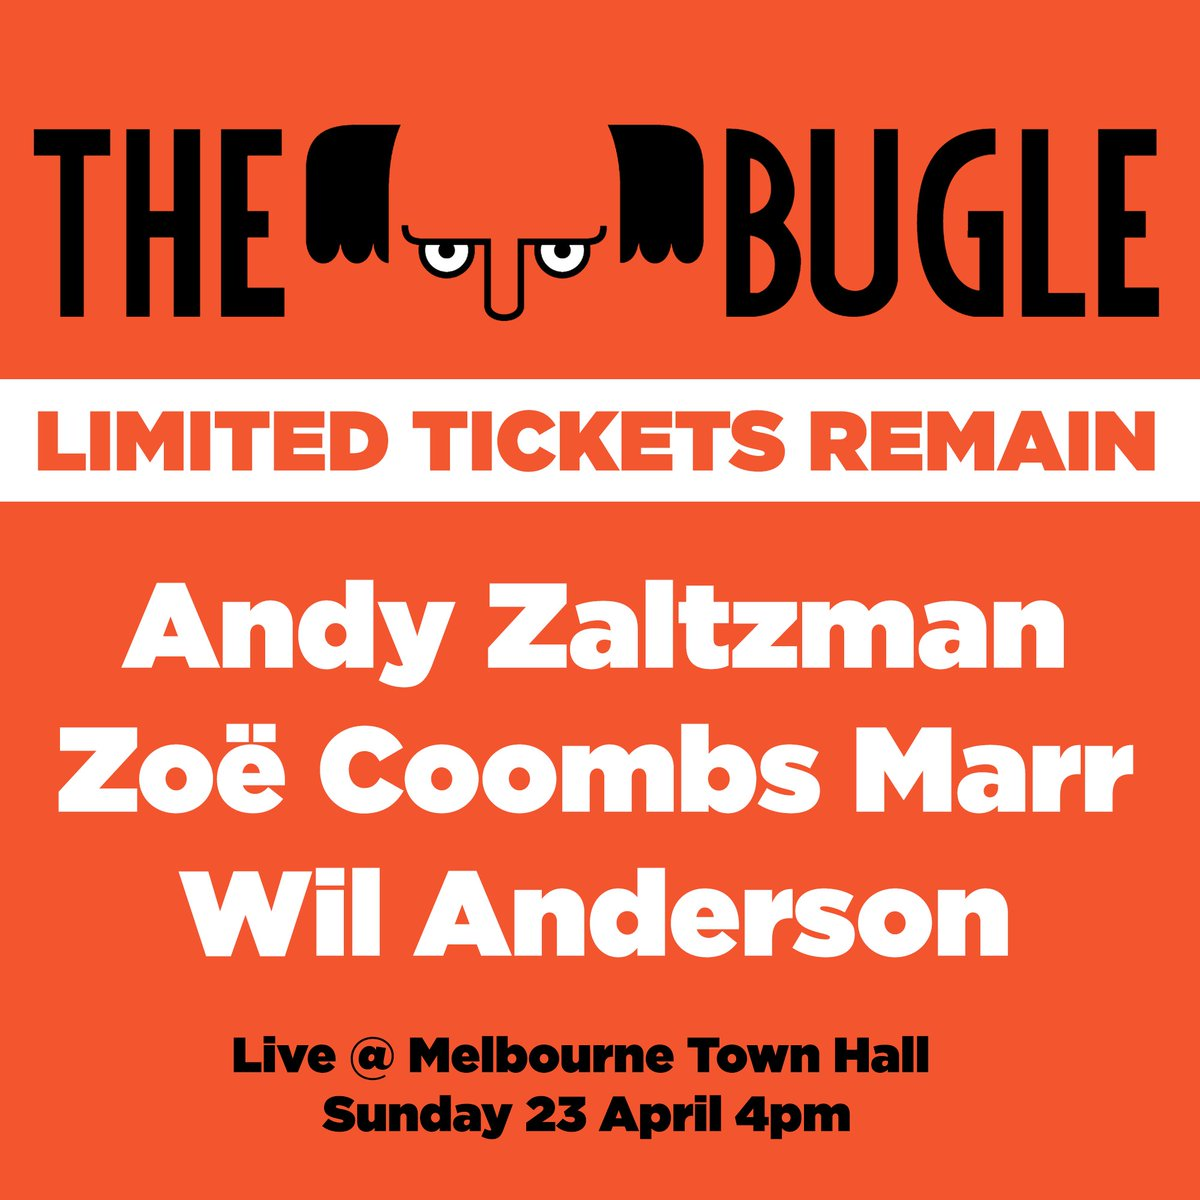 zoe coombs marr zoecoombsmarr twitter some very special guests at tomorrow s live recording of global smash hit podcast the bugle don t miss this one bit ly micfbuglelive